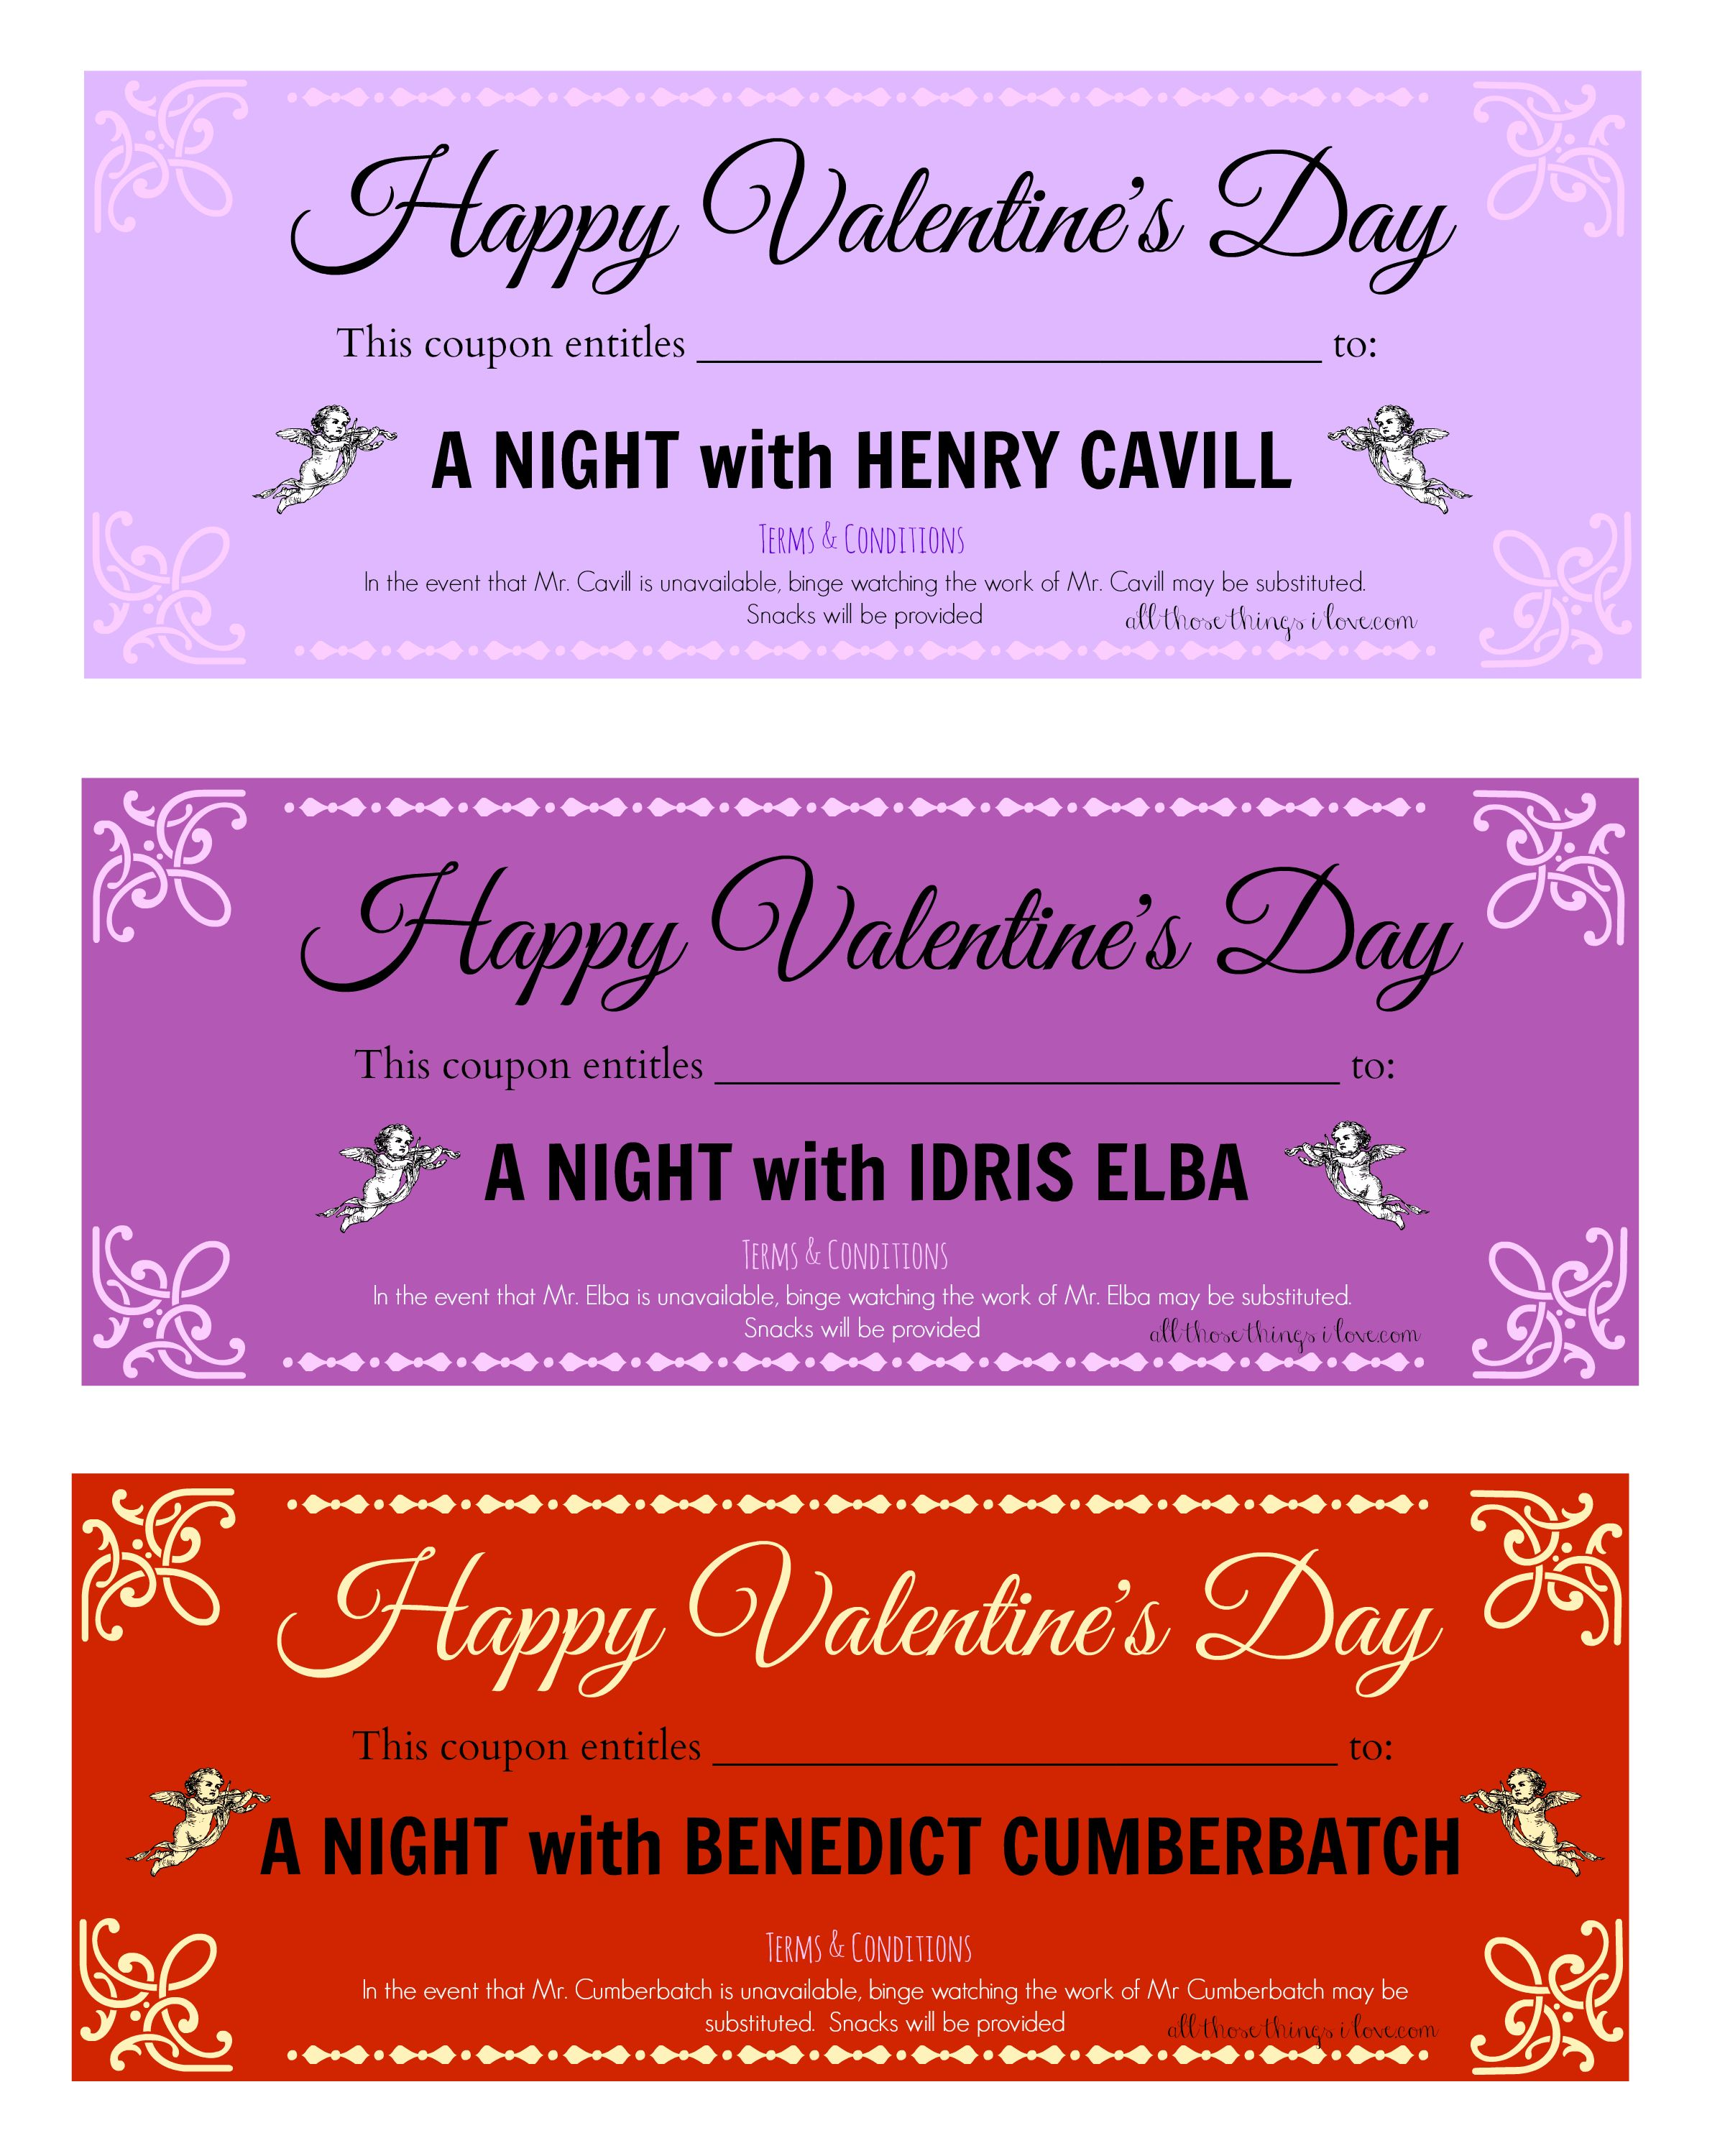 Free ValentineS Day Printable Love Coupons A Night With Henry